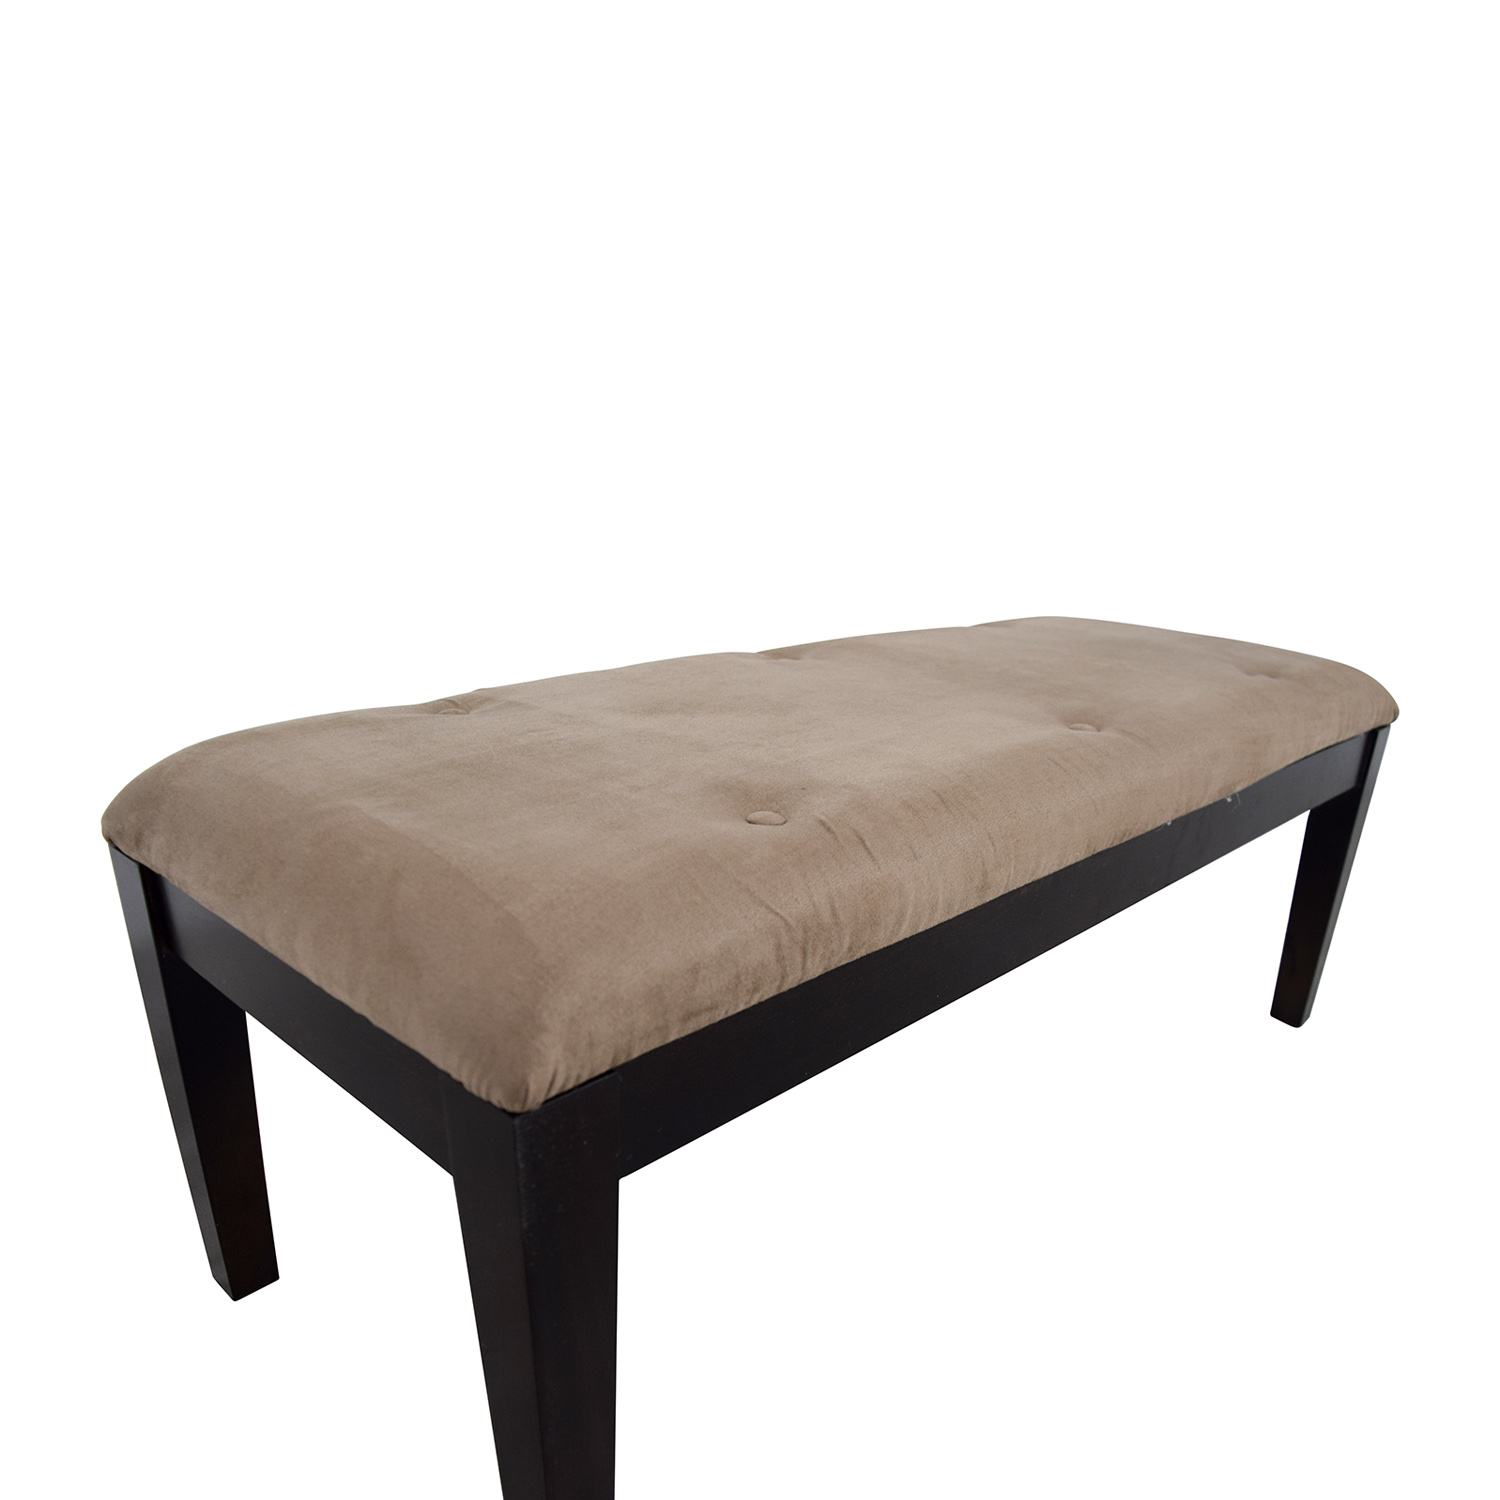 Raymour & Flanigan Raymour & Flanigan Brown Foot Bench discount